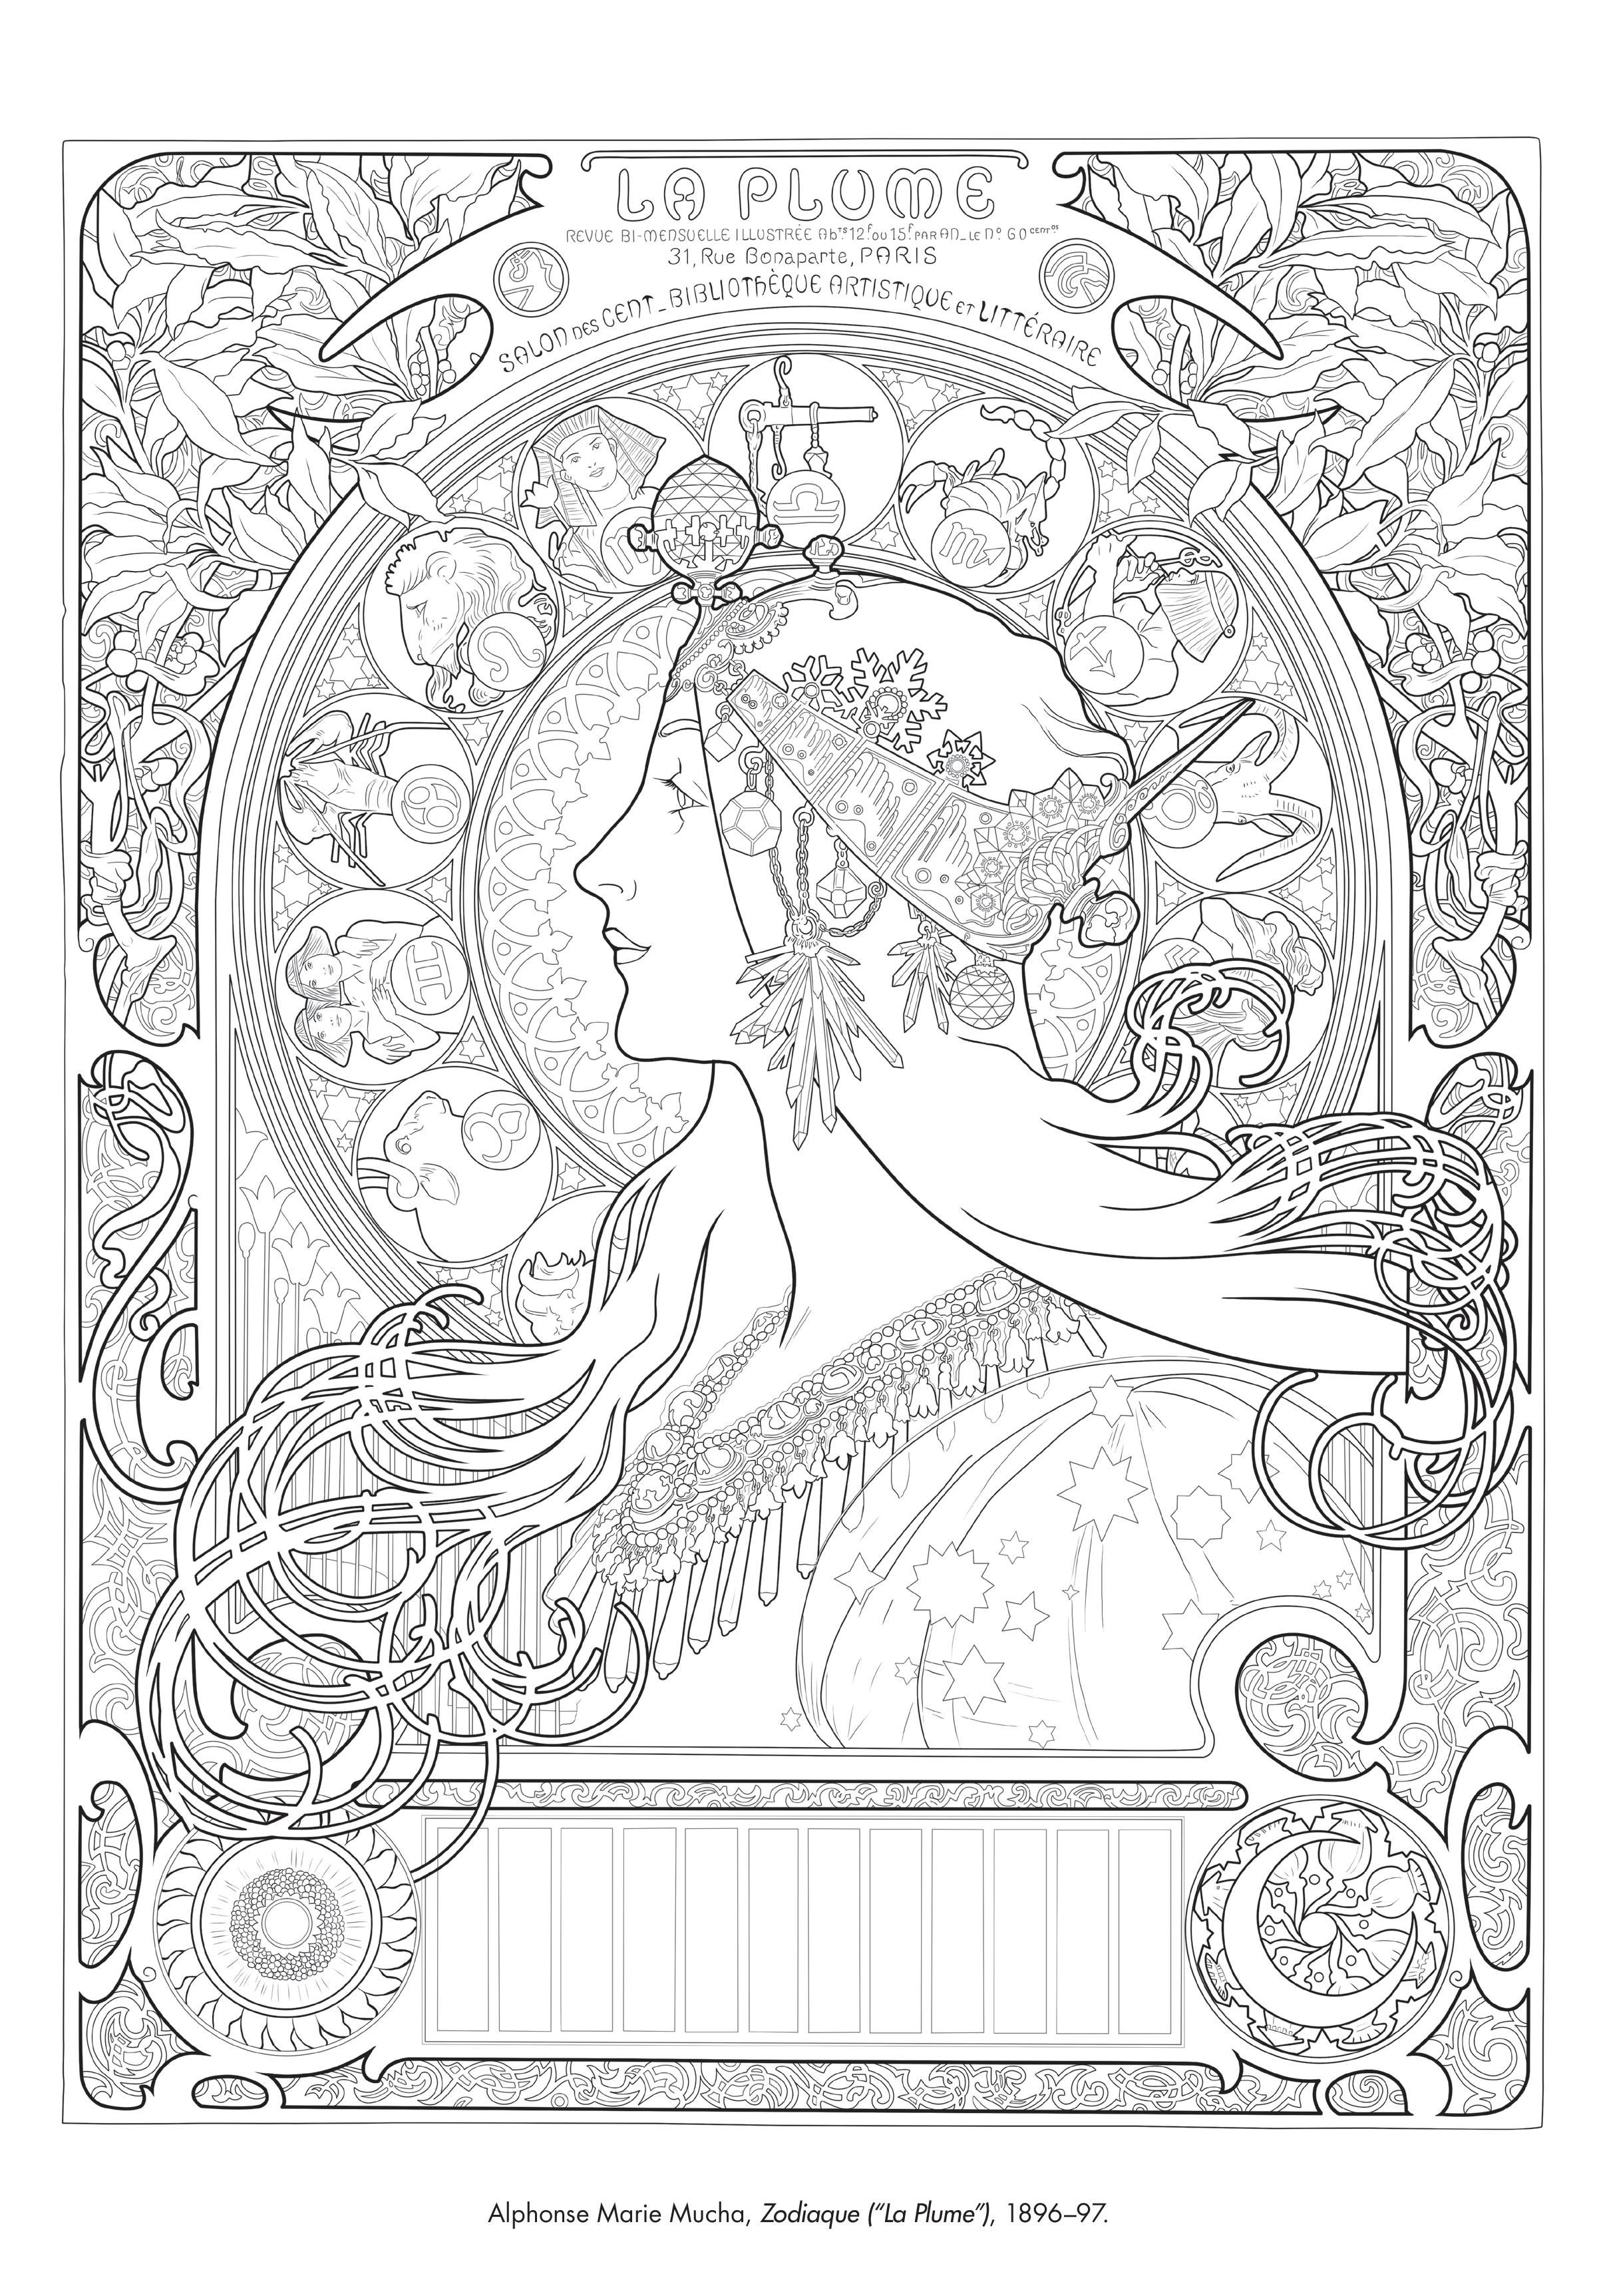 Coloring Page Of Zodiaque By Alphonse Marie Mucha In Color The Classics From The Art Institute Of Chicago And So Art Institute Of Chicago Art Art Inspiration